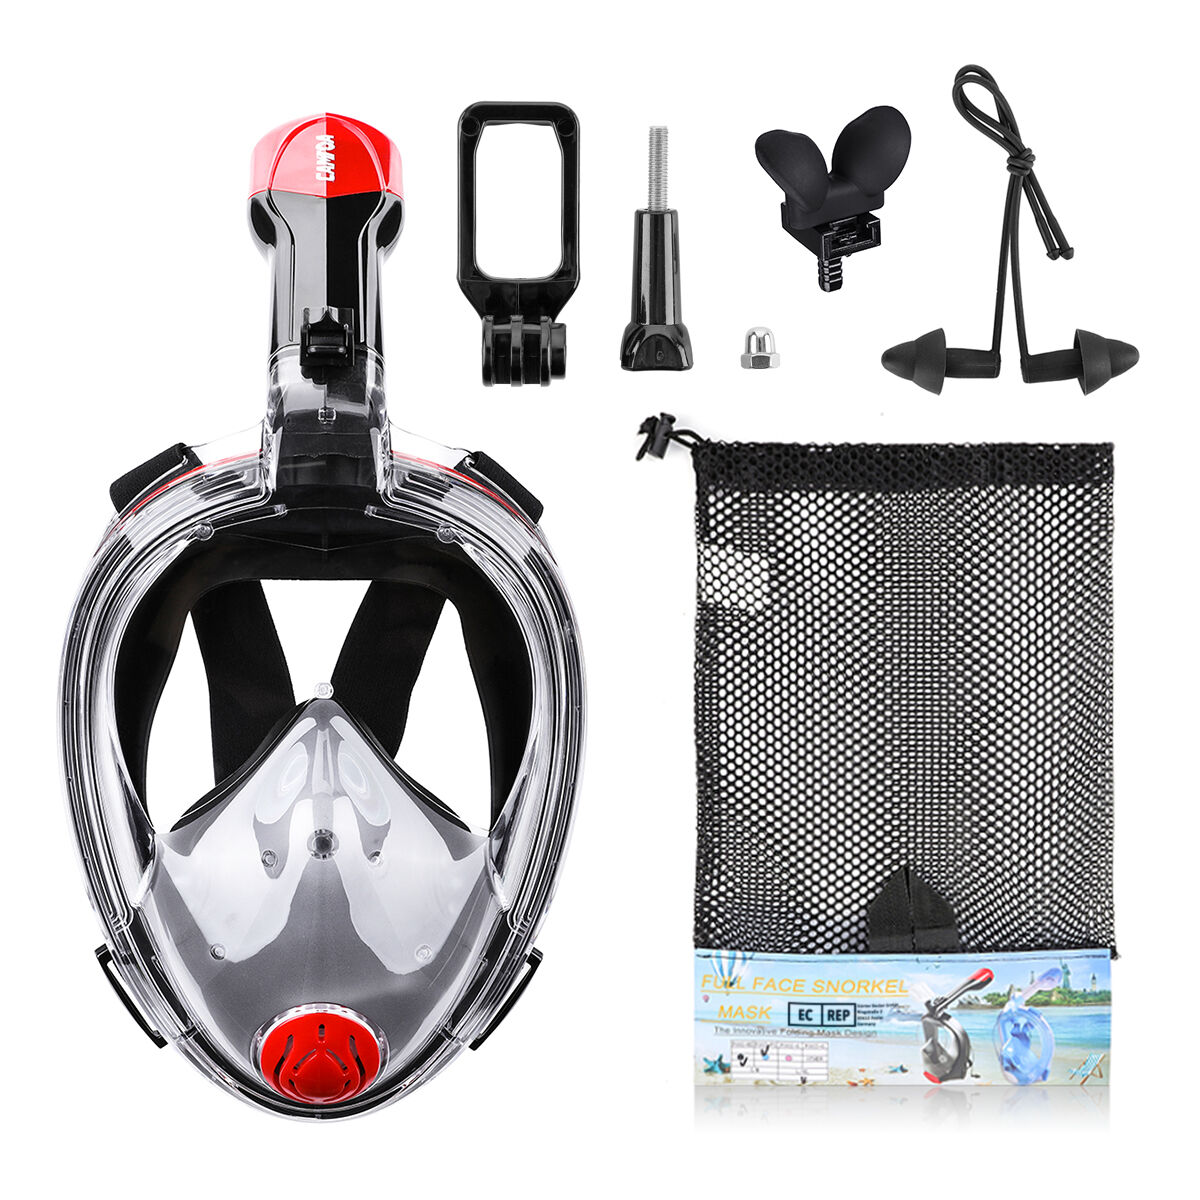 CAMTOA Foldable 180° Full Face Snorkeling Mask Anti fog Diving Respirator Mask with Detachable Camera Stand Net Bag - 1